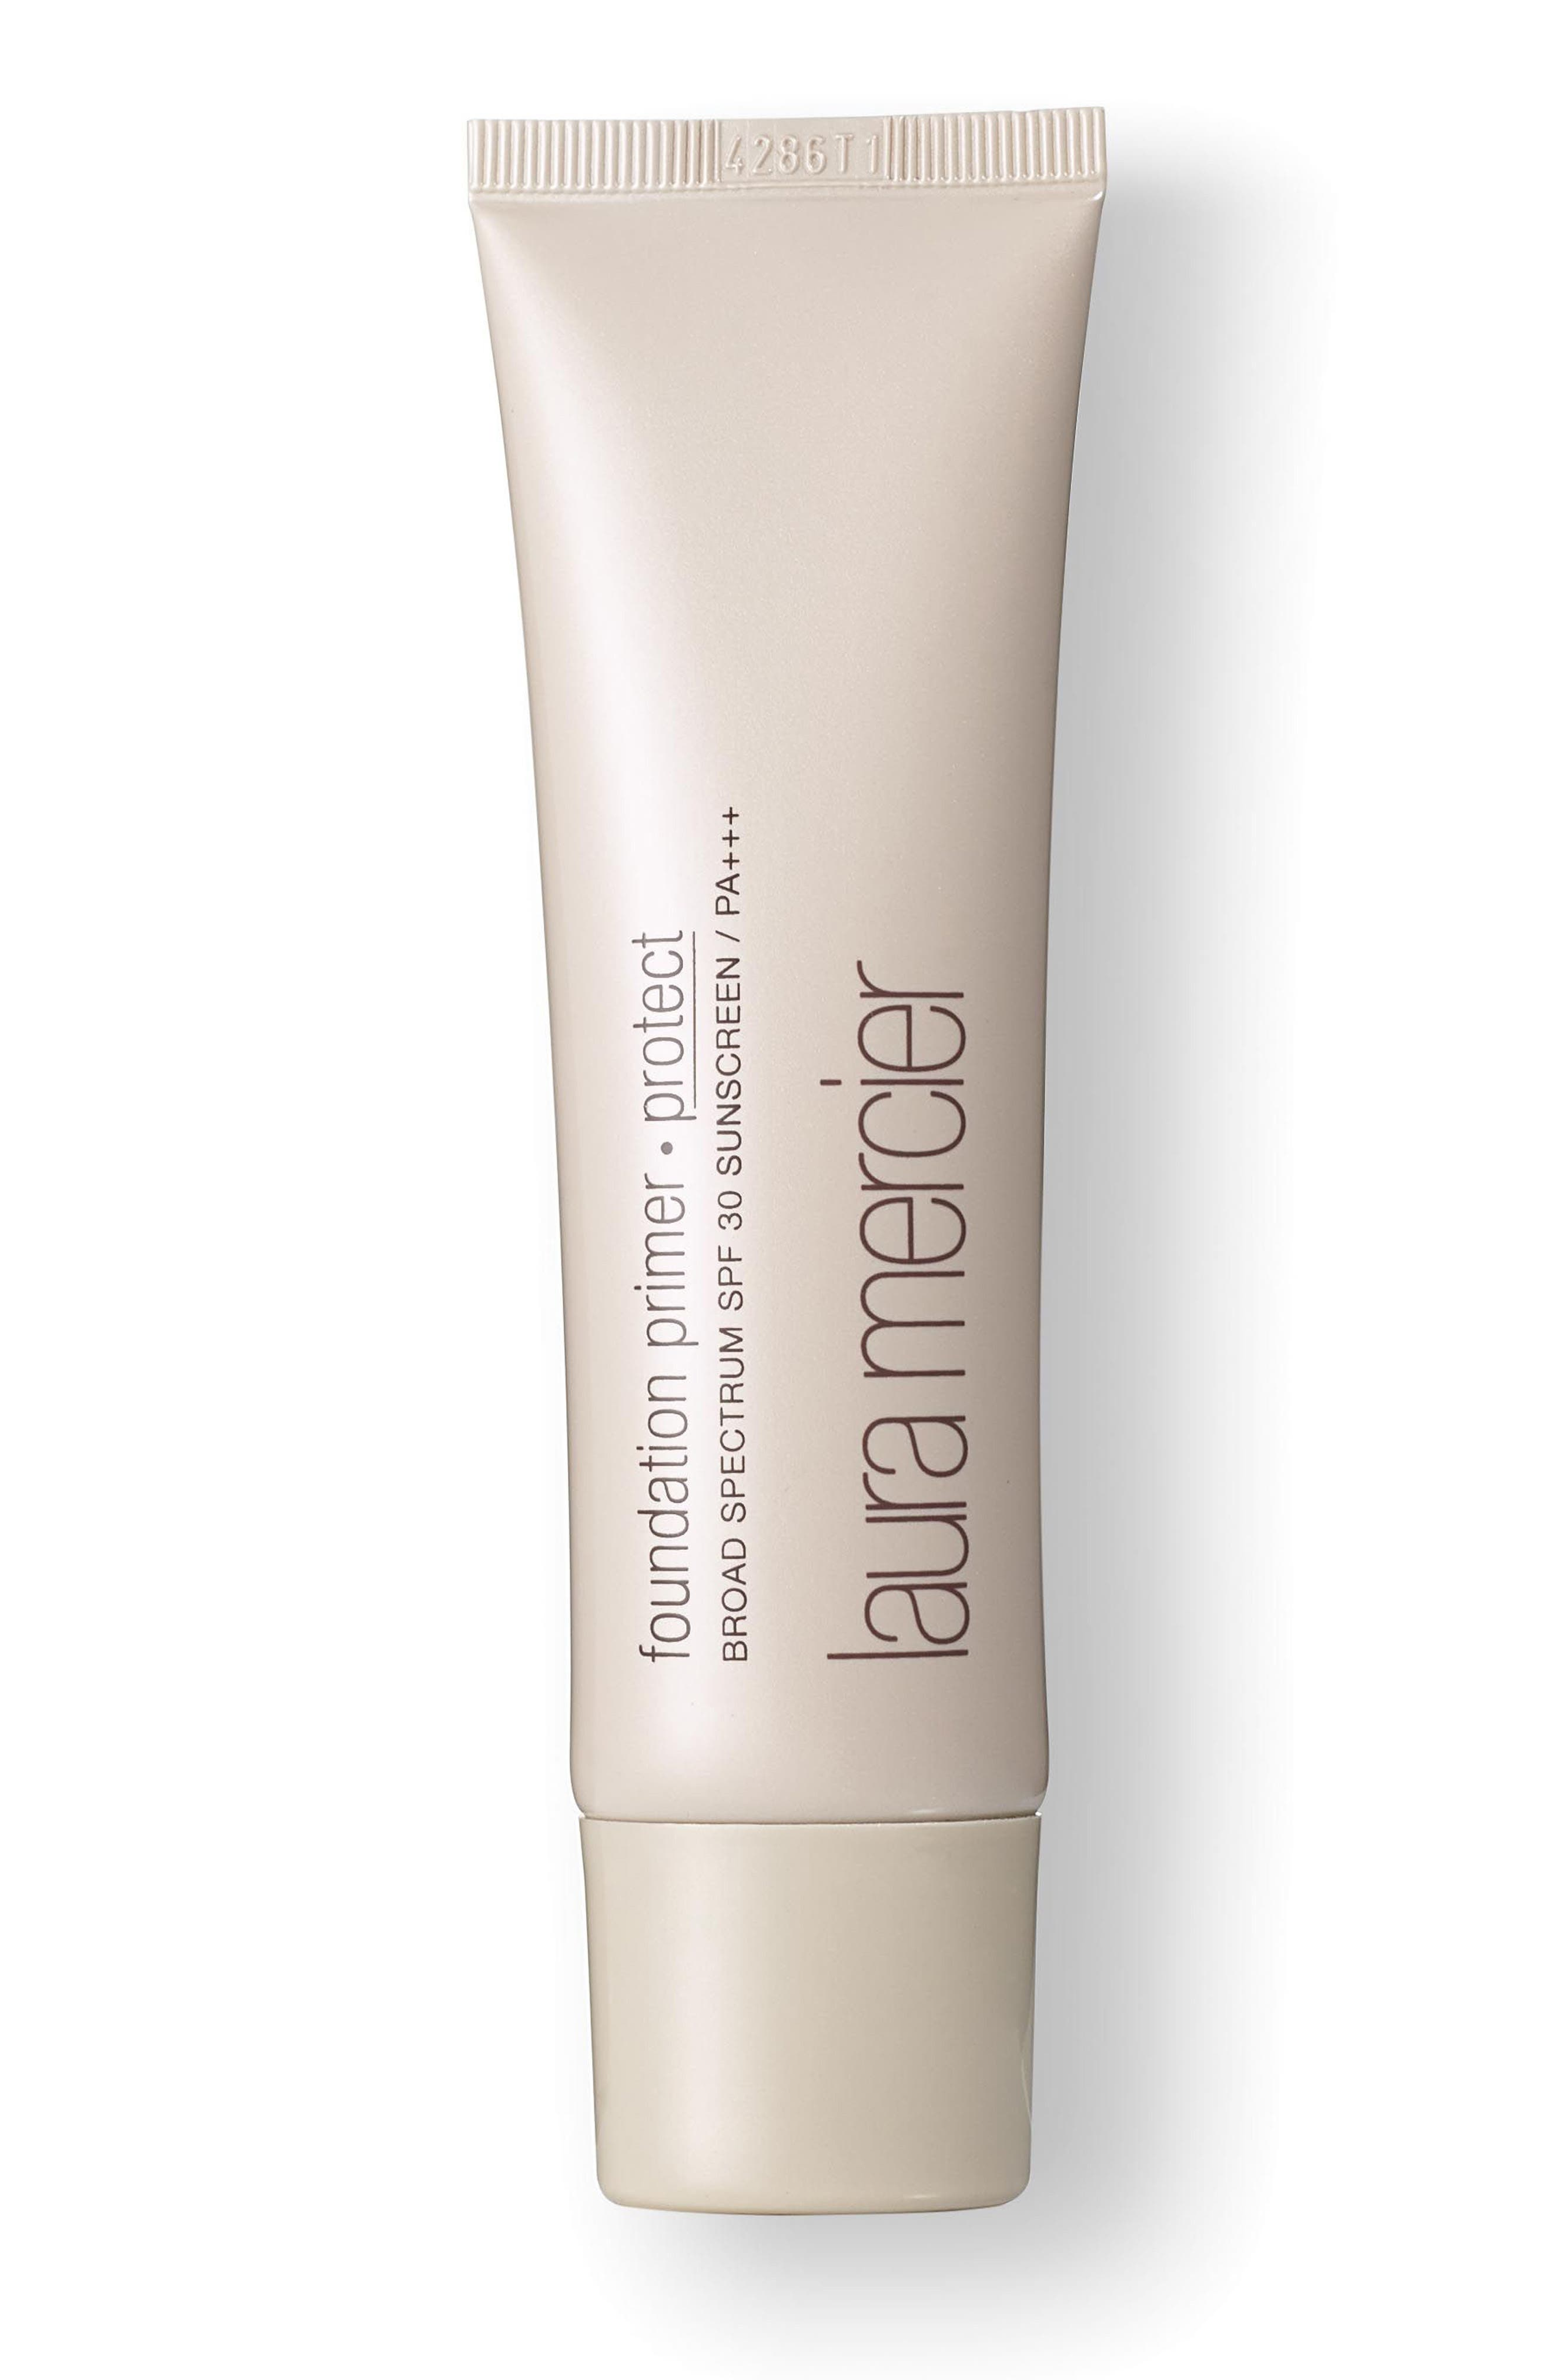 Alternate Image 1 Selected - Laura Mercier Foundation Primer Protect Broad Spectrum SPF 30/PA+++ (1.7 oz.)